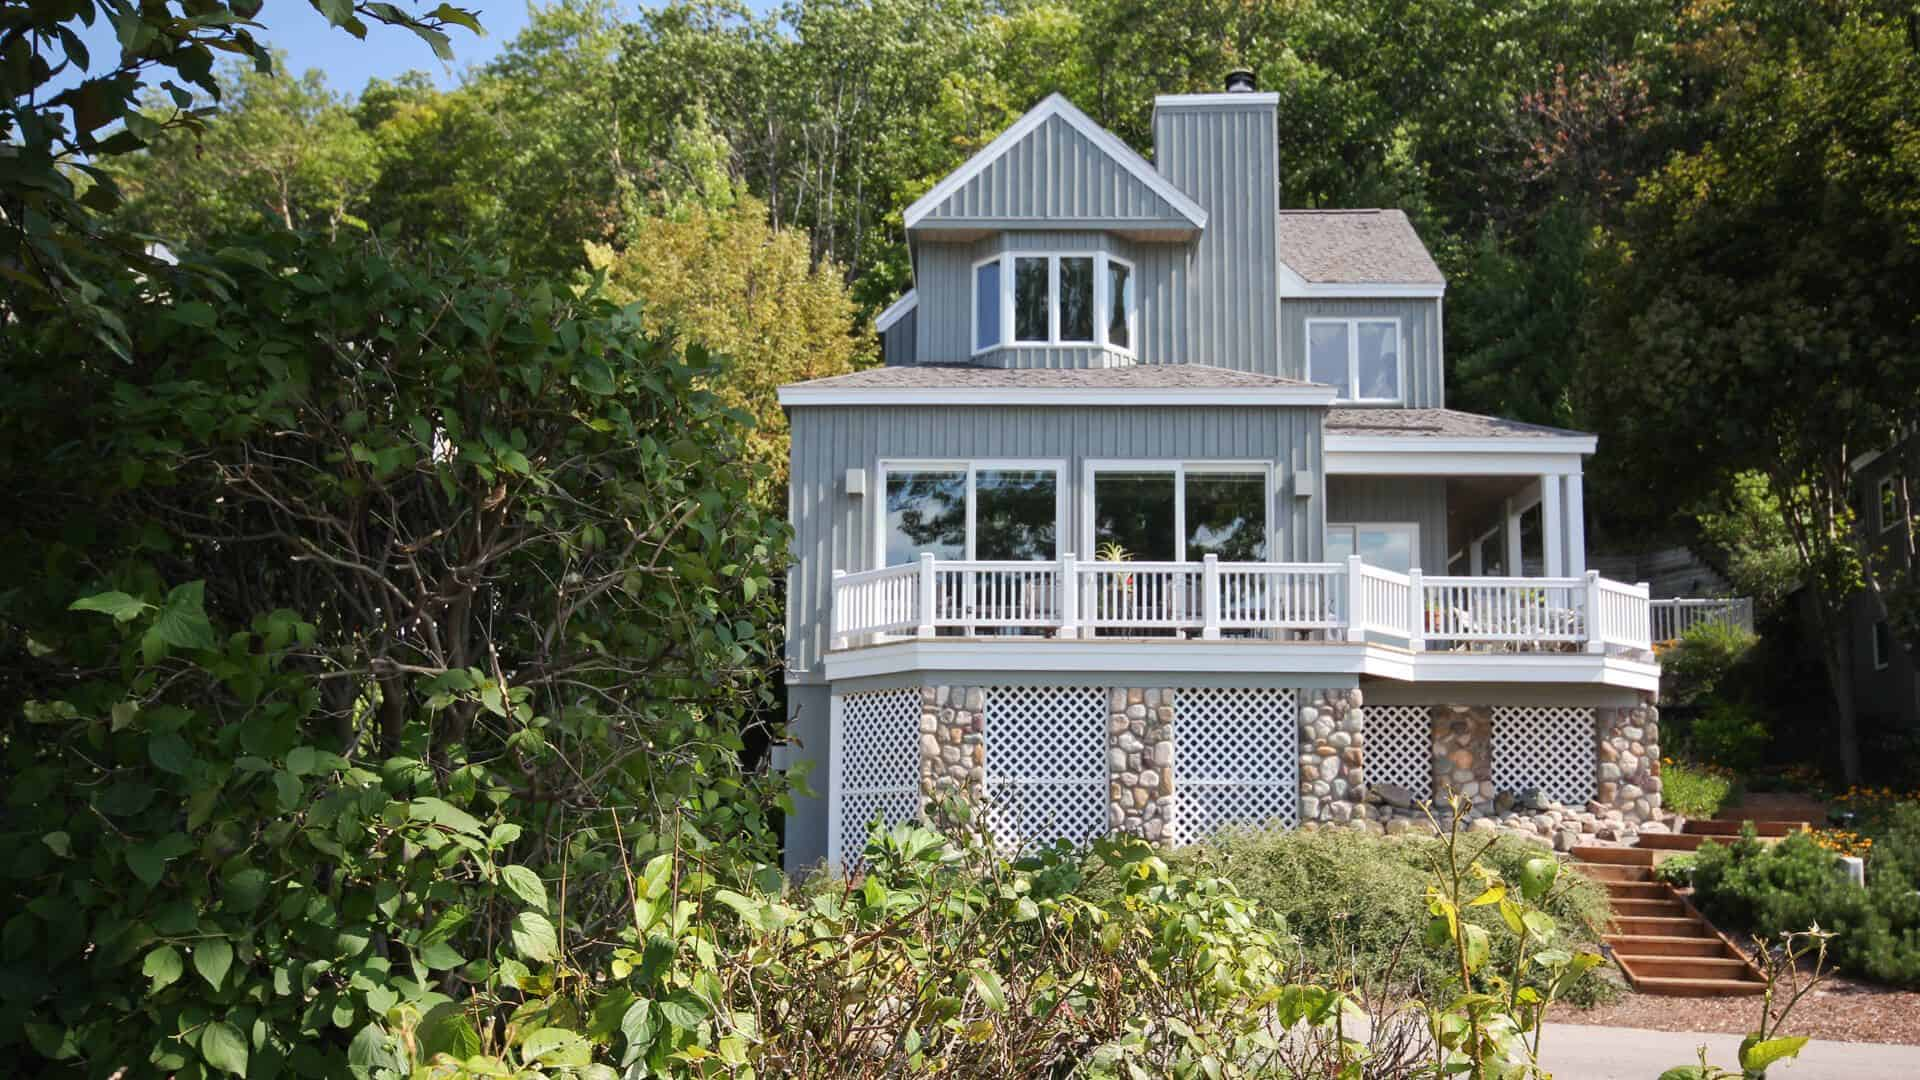 Home exterior of custom home at the Homestead in Glen Arbor